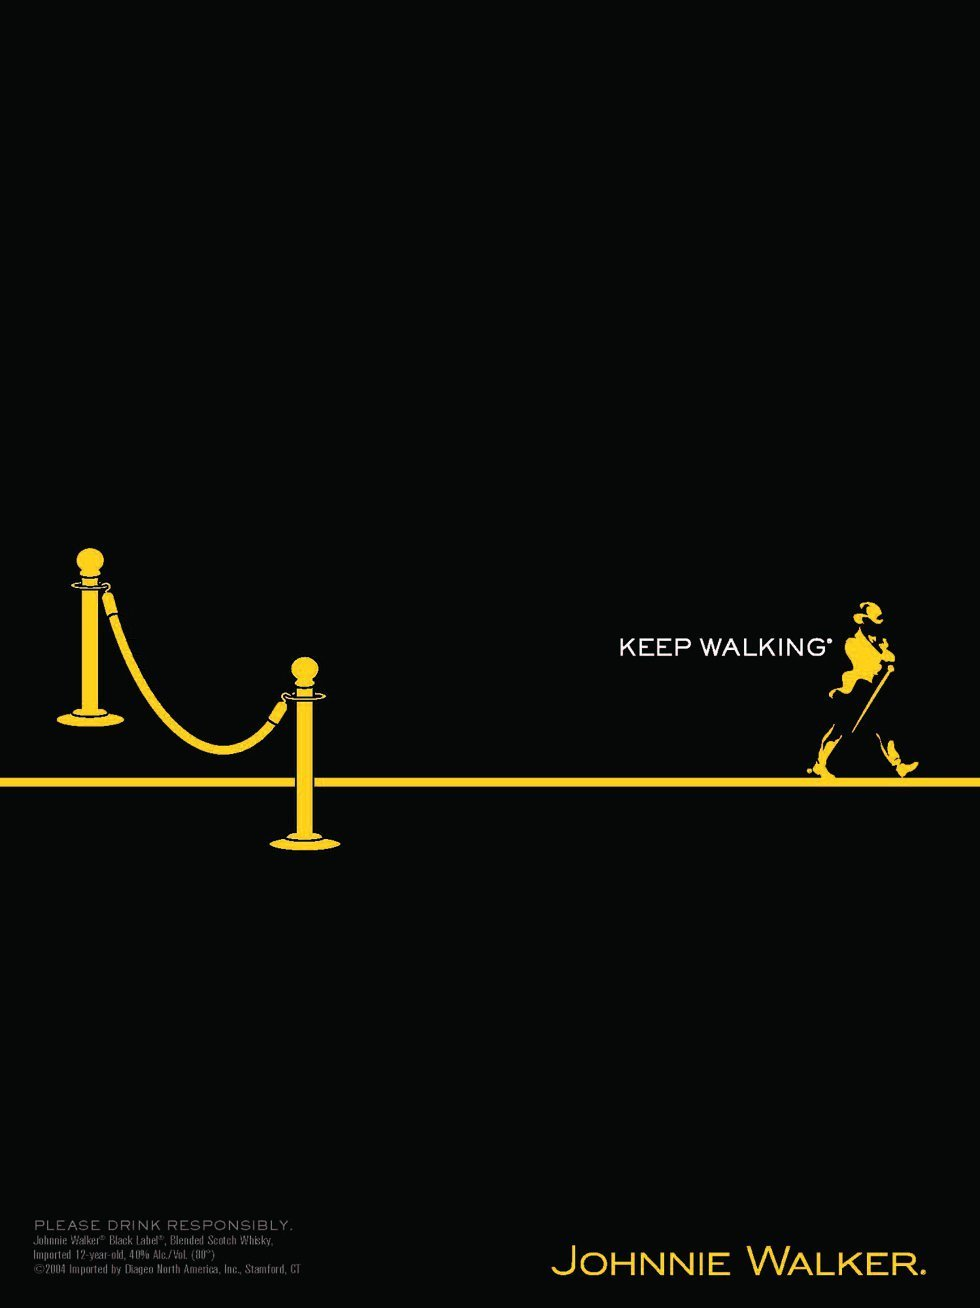 These Johnnie Walker Print Ads That Boast Of Its Rich Legacy Are Truly A Class Apart